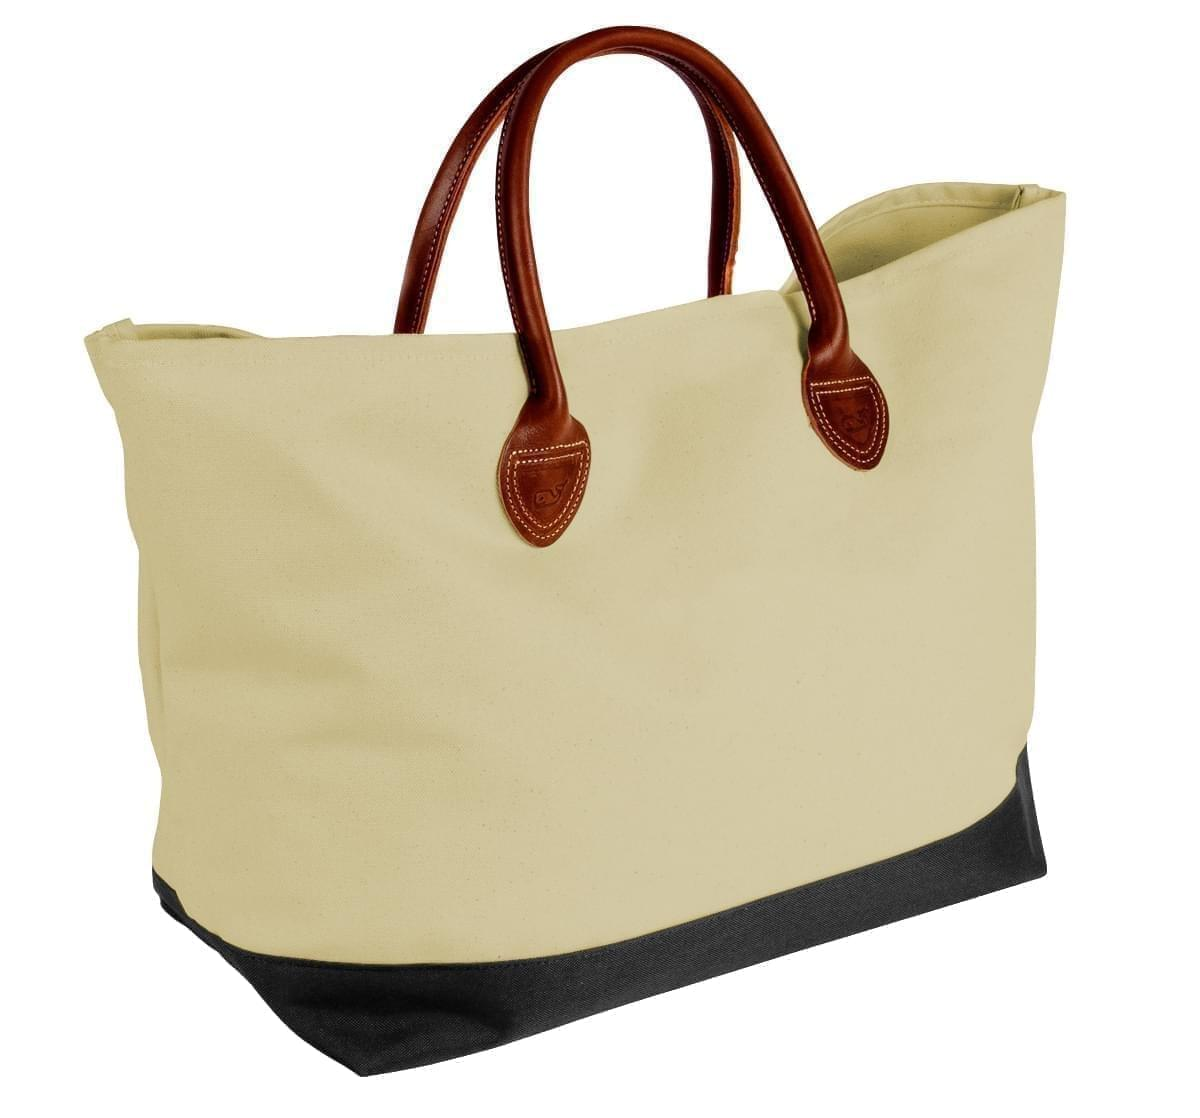 USA Made Canvas Leather Handle Totes, Natural-Black, 10899-CK9